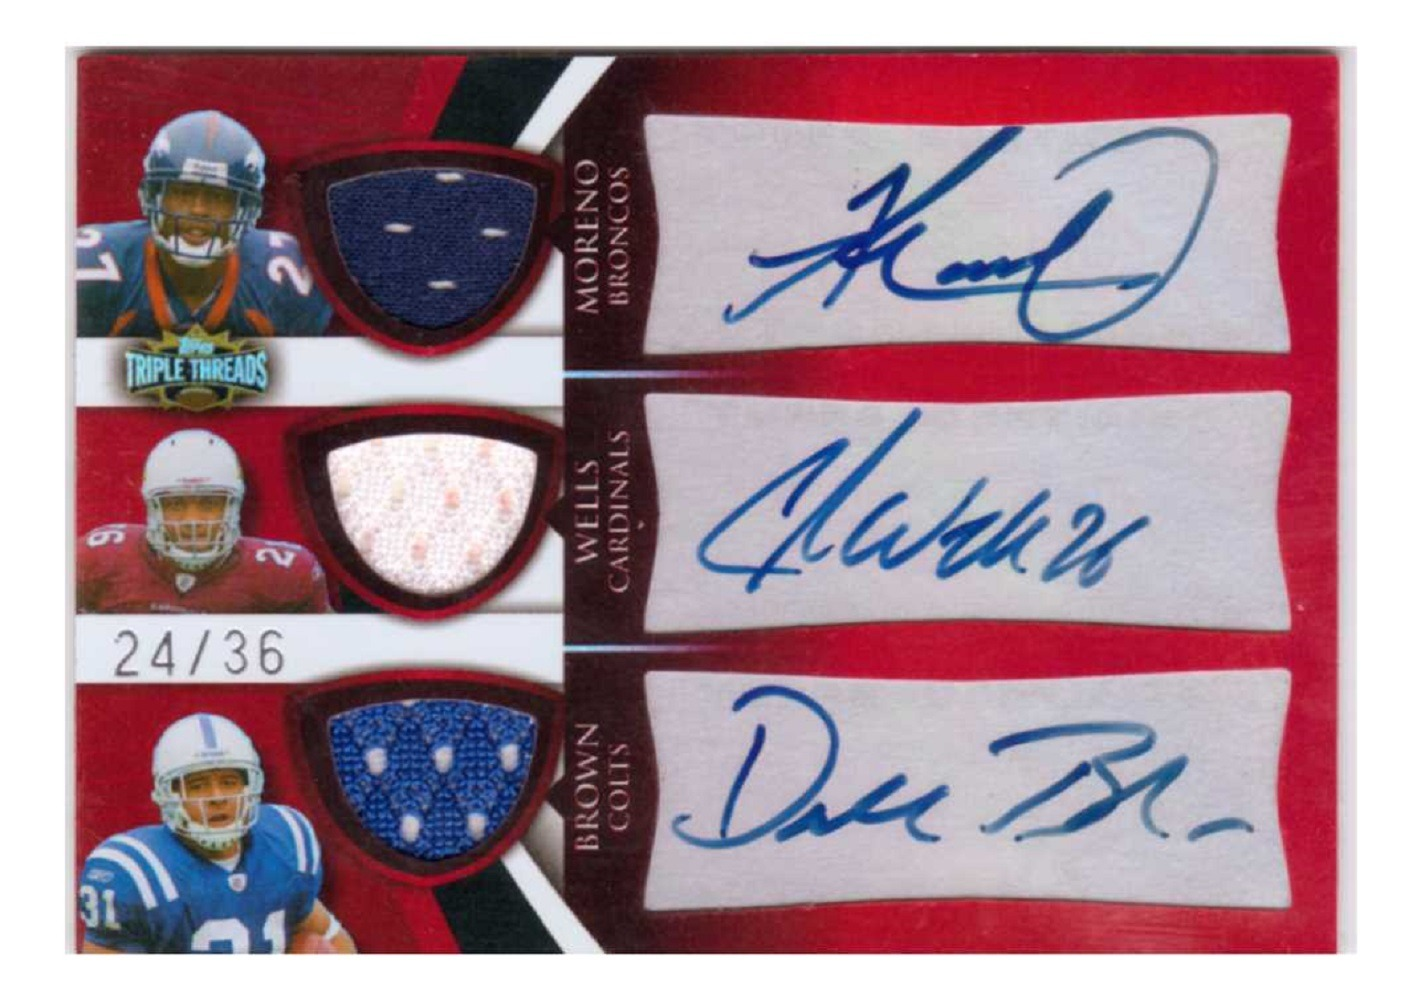 Knowshon Moreno Chris Wells Donald Brown 2009 Triple Threads Autograph Red RC/36 Jersey Relic Rookie Combos Auto Topps  (x)